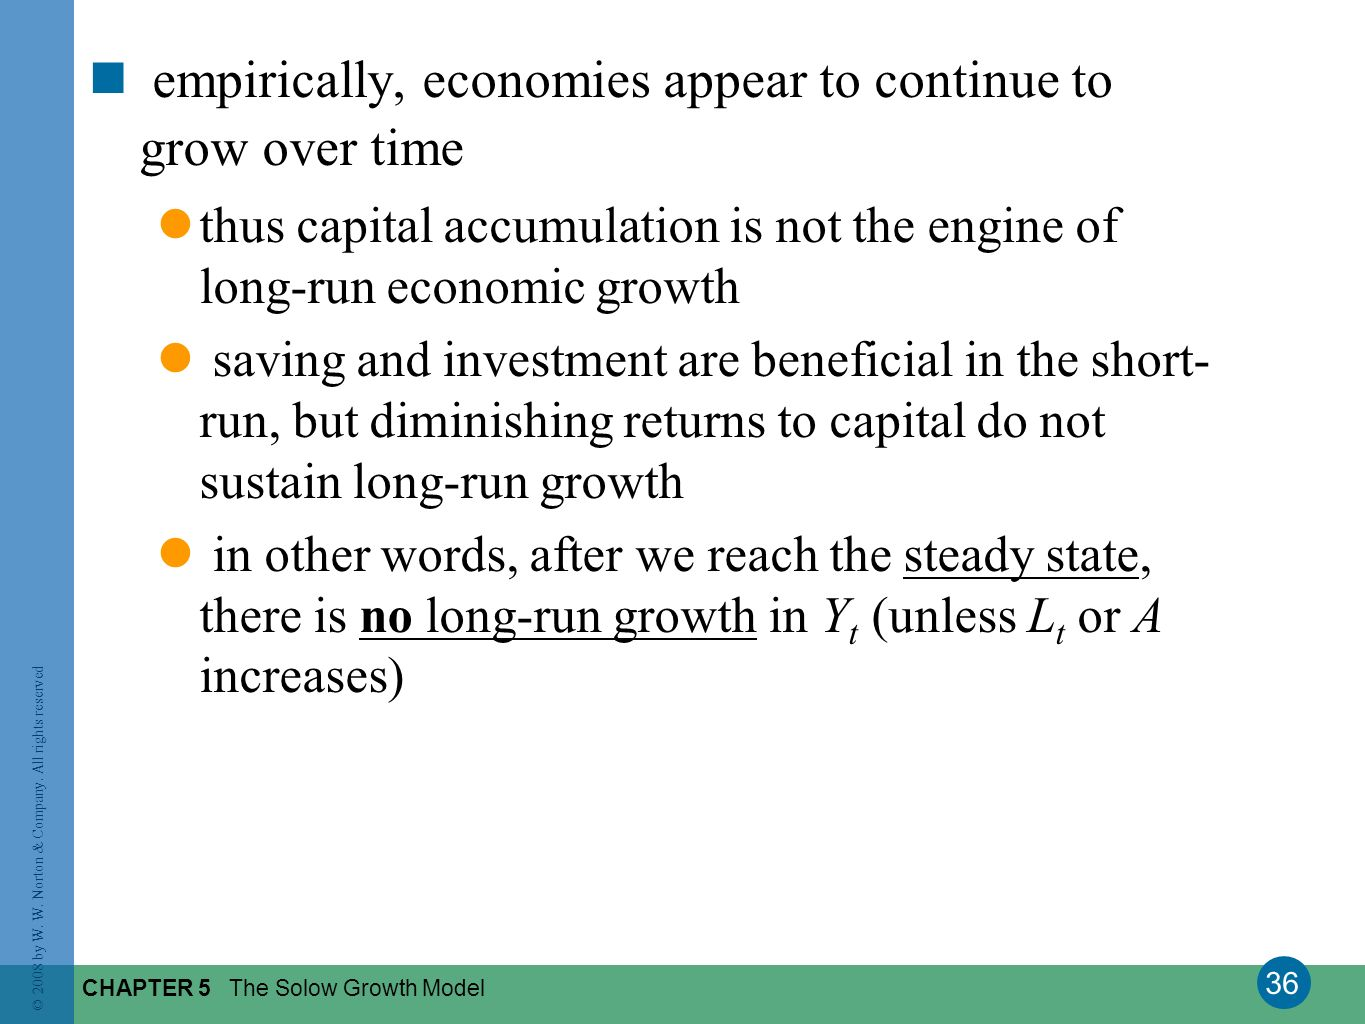 36 © 2008 by W. W. Norton & Company. All rights reserved CHAPTER 5 The Solow Growth Model empirically, economies appear to continue to grow over time